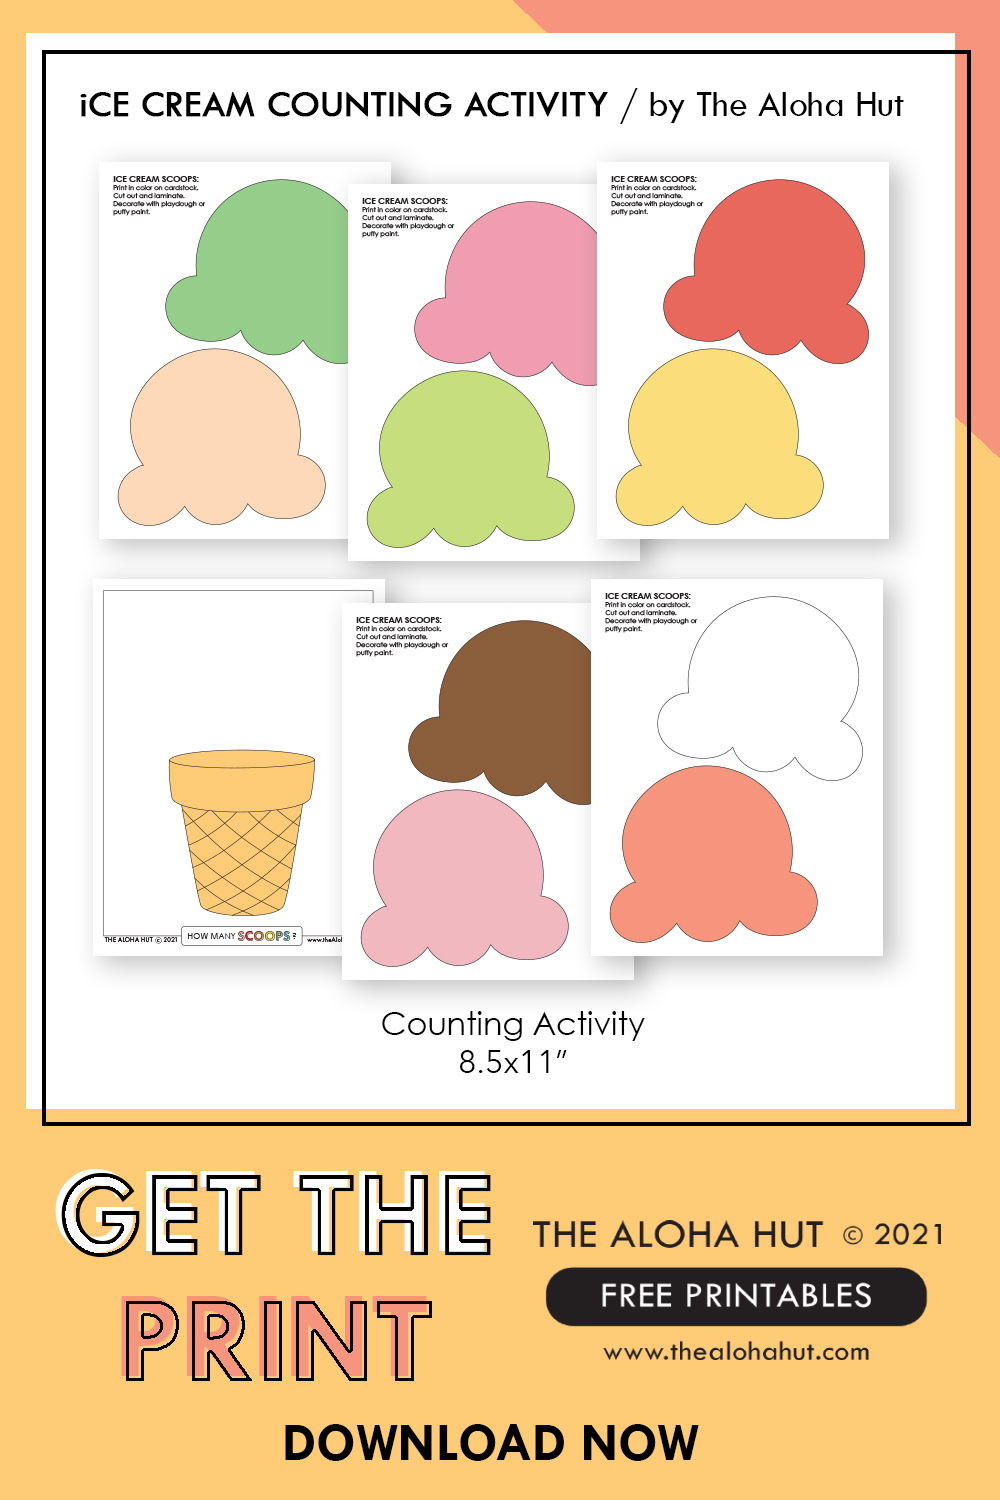 ice cream counting activity by the Aloha Hut